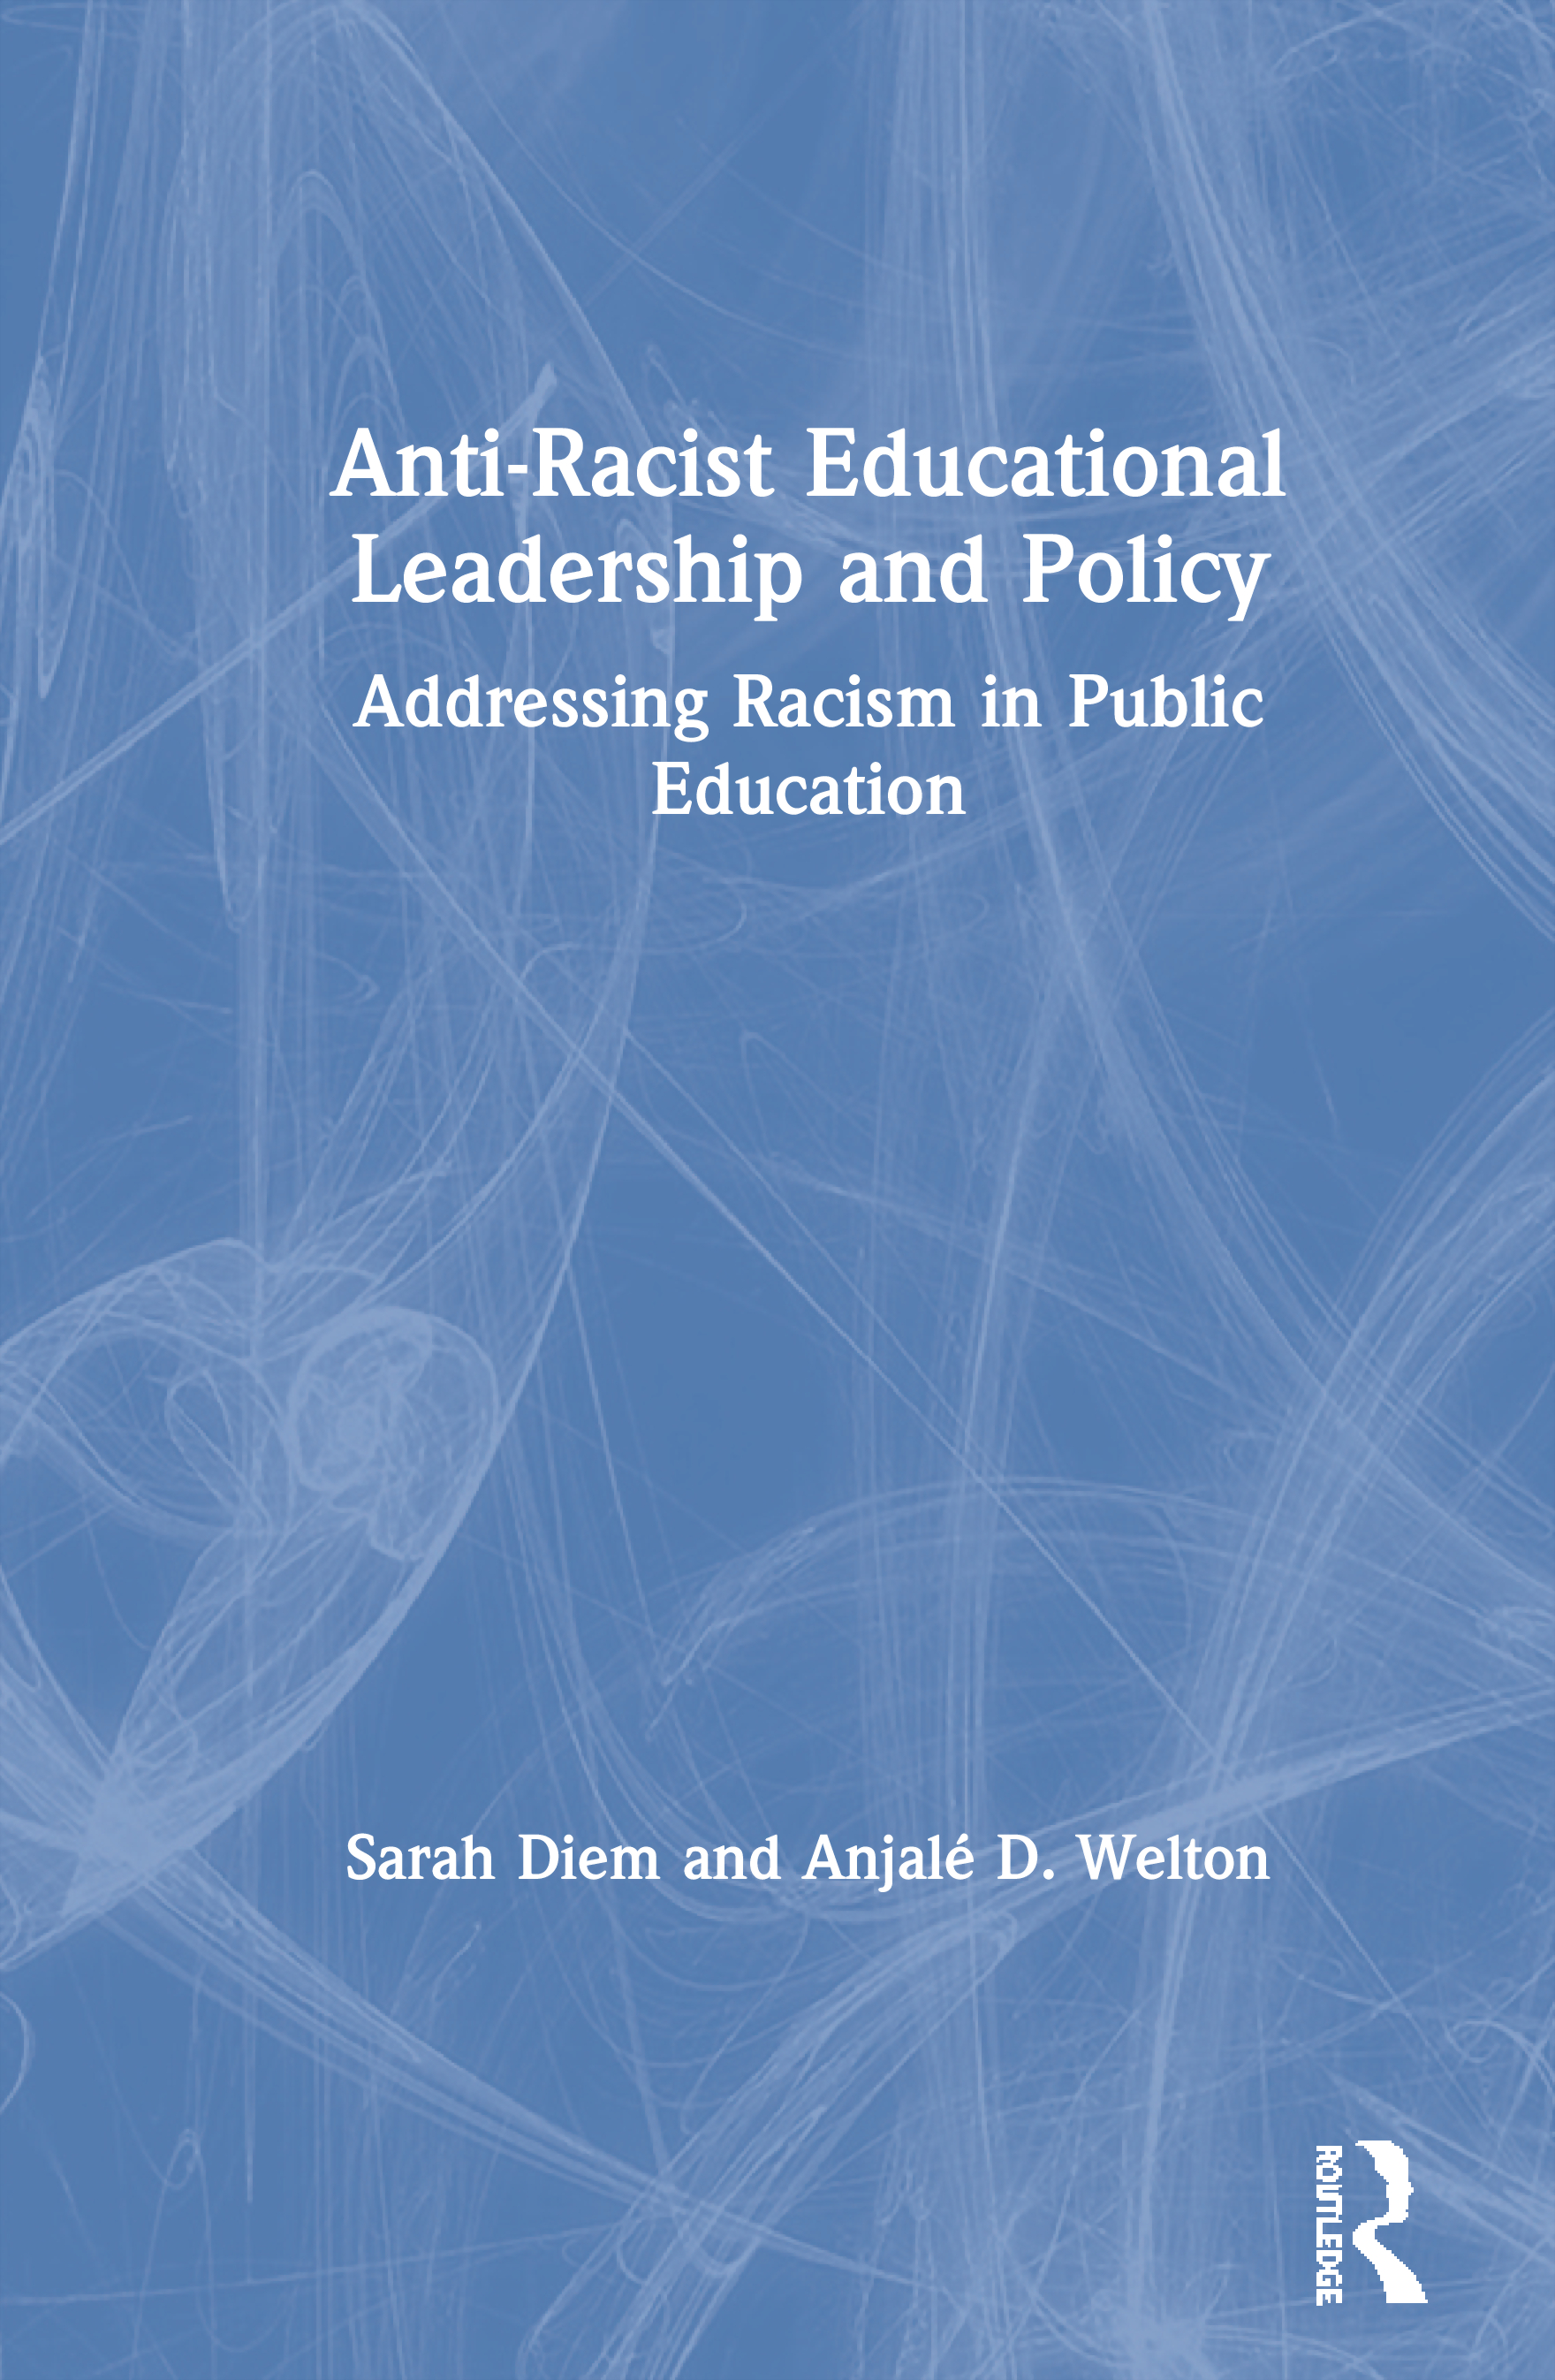 Anti-Racist Educational Leadership and Policy: Addressing Racism in Public Education book cover